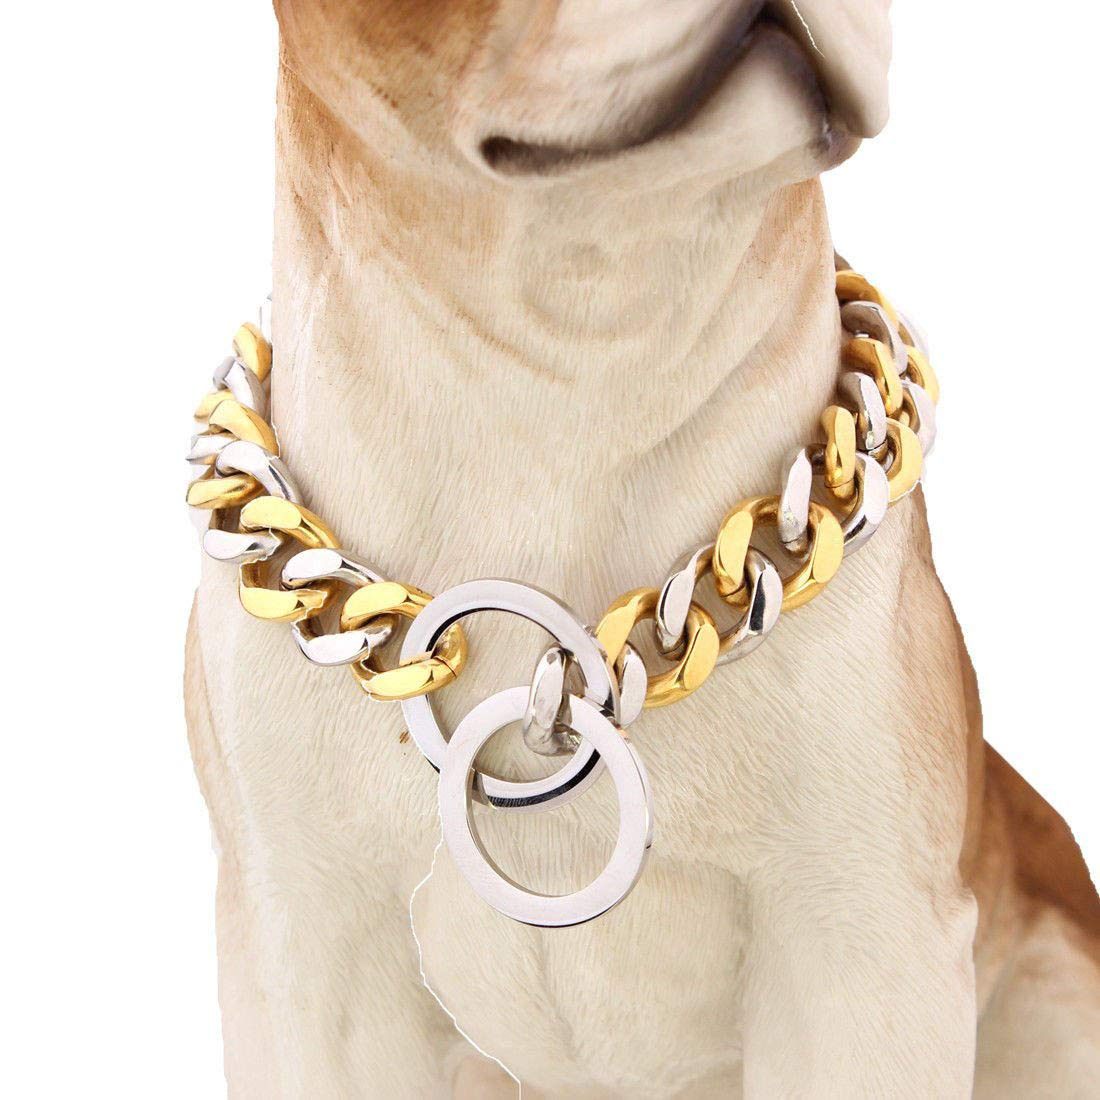 15mm Stainless Steel Chain Dog Choke Collar Heavy Duty for Medium Large Breeds Training Slip Collar,18inch